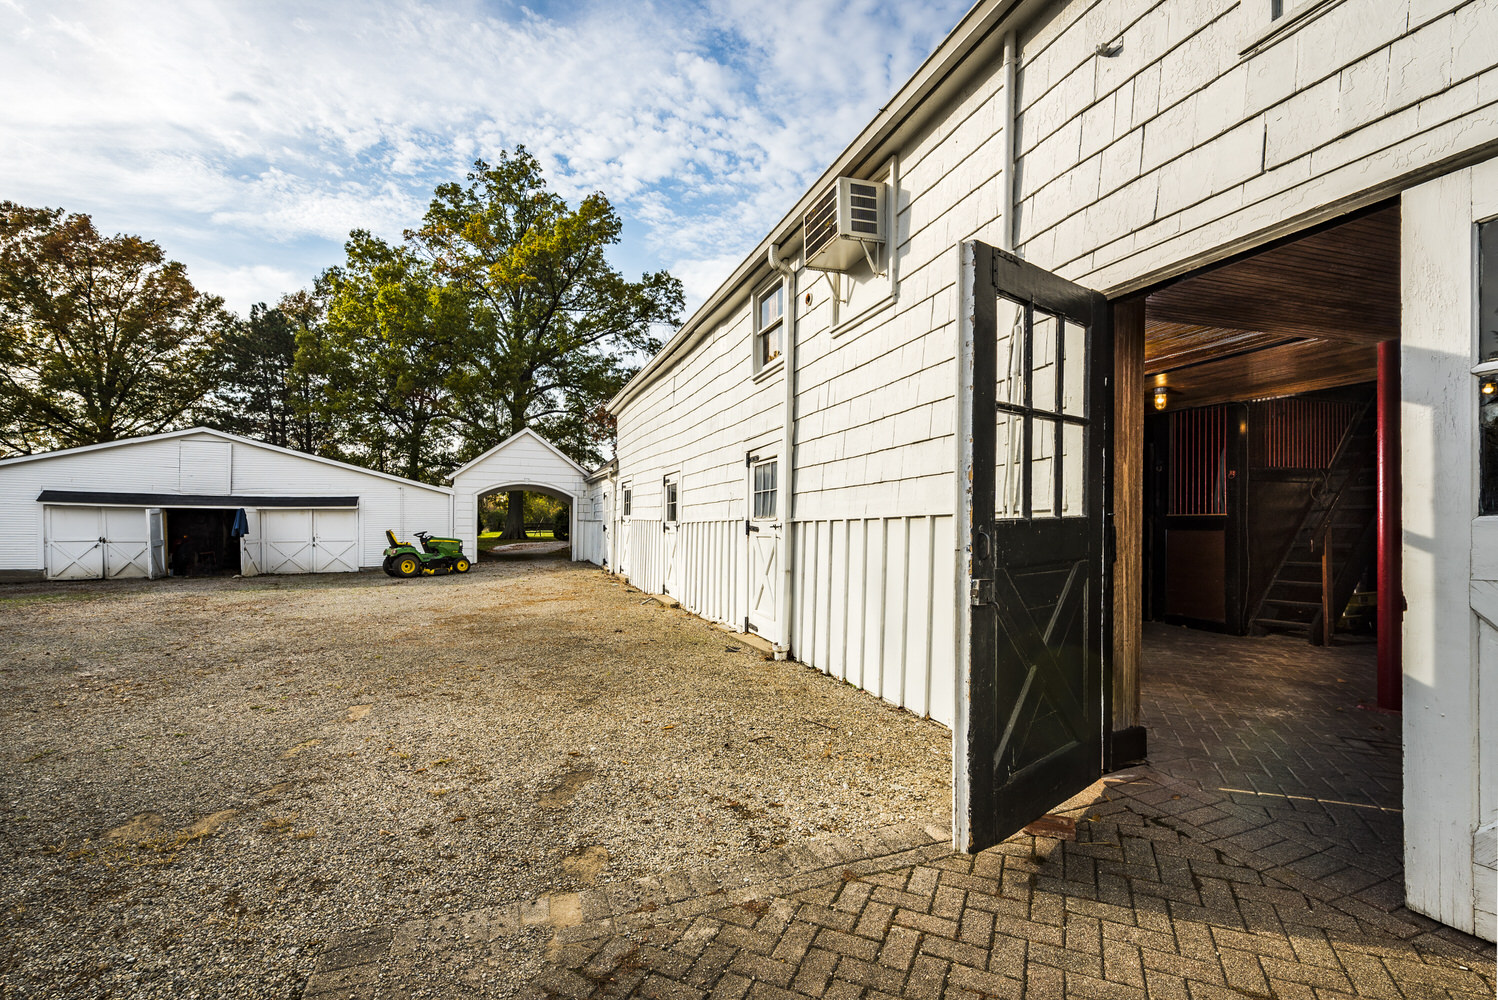 Real Estate, Residential, Estate, Exterior, Stable, Barn